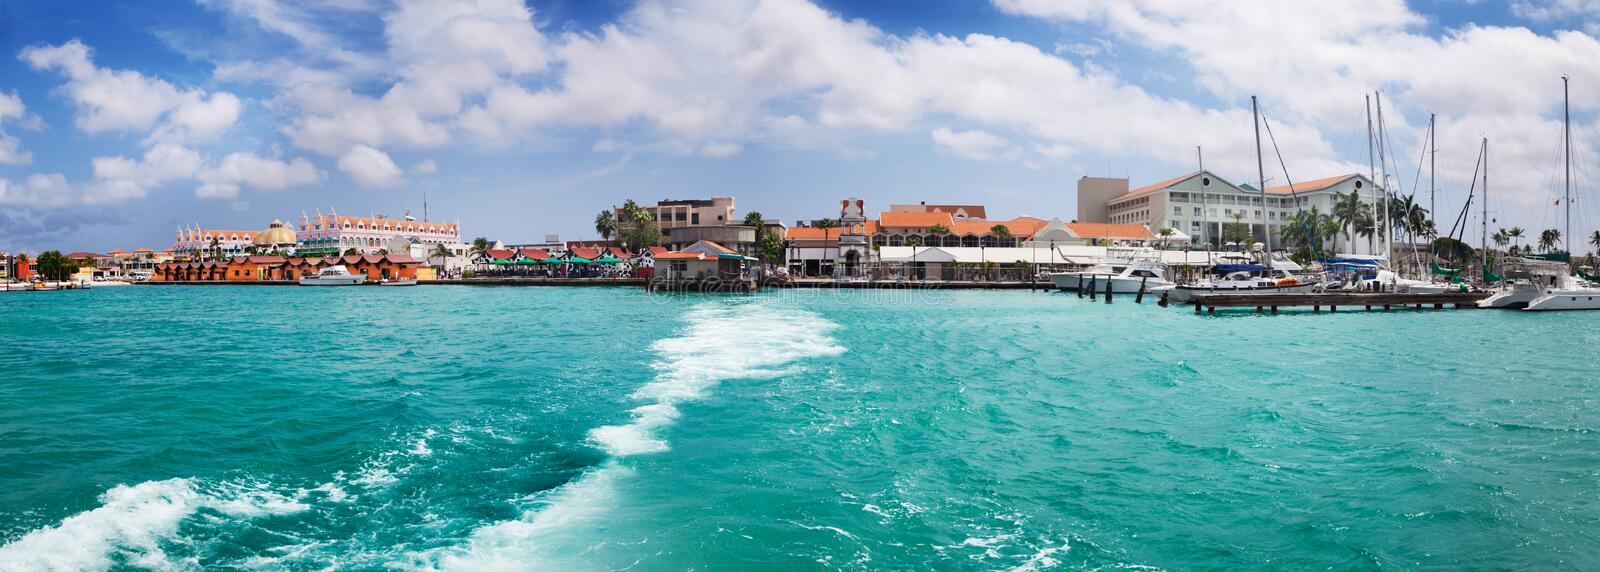 Download Oranjestad, Aruba stock photo. Image of blue, oranjestad - 24595444